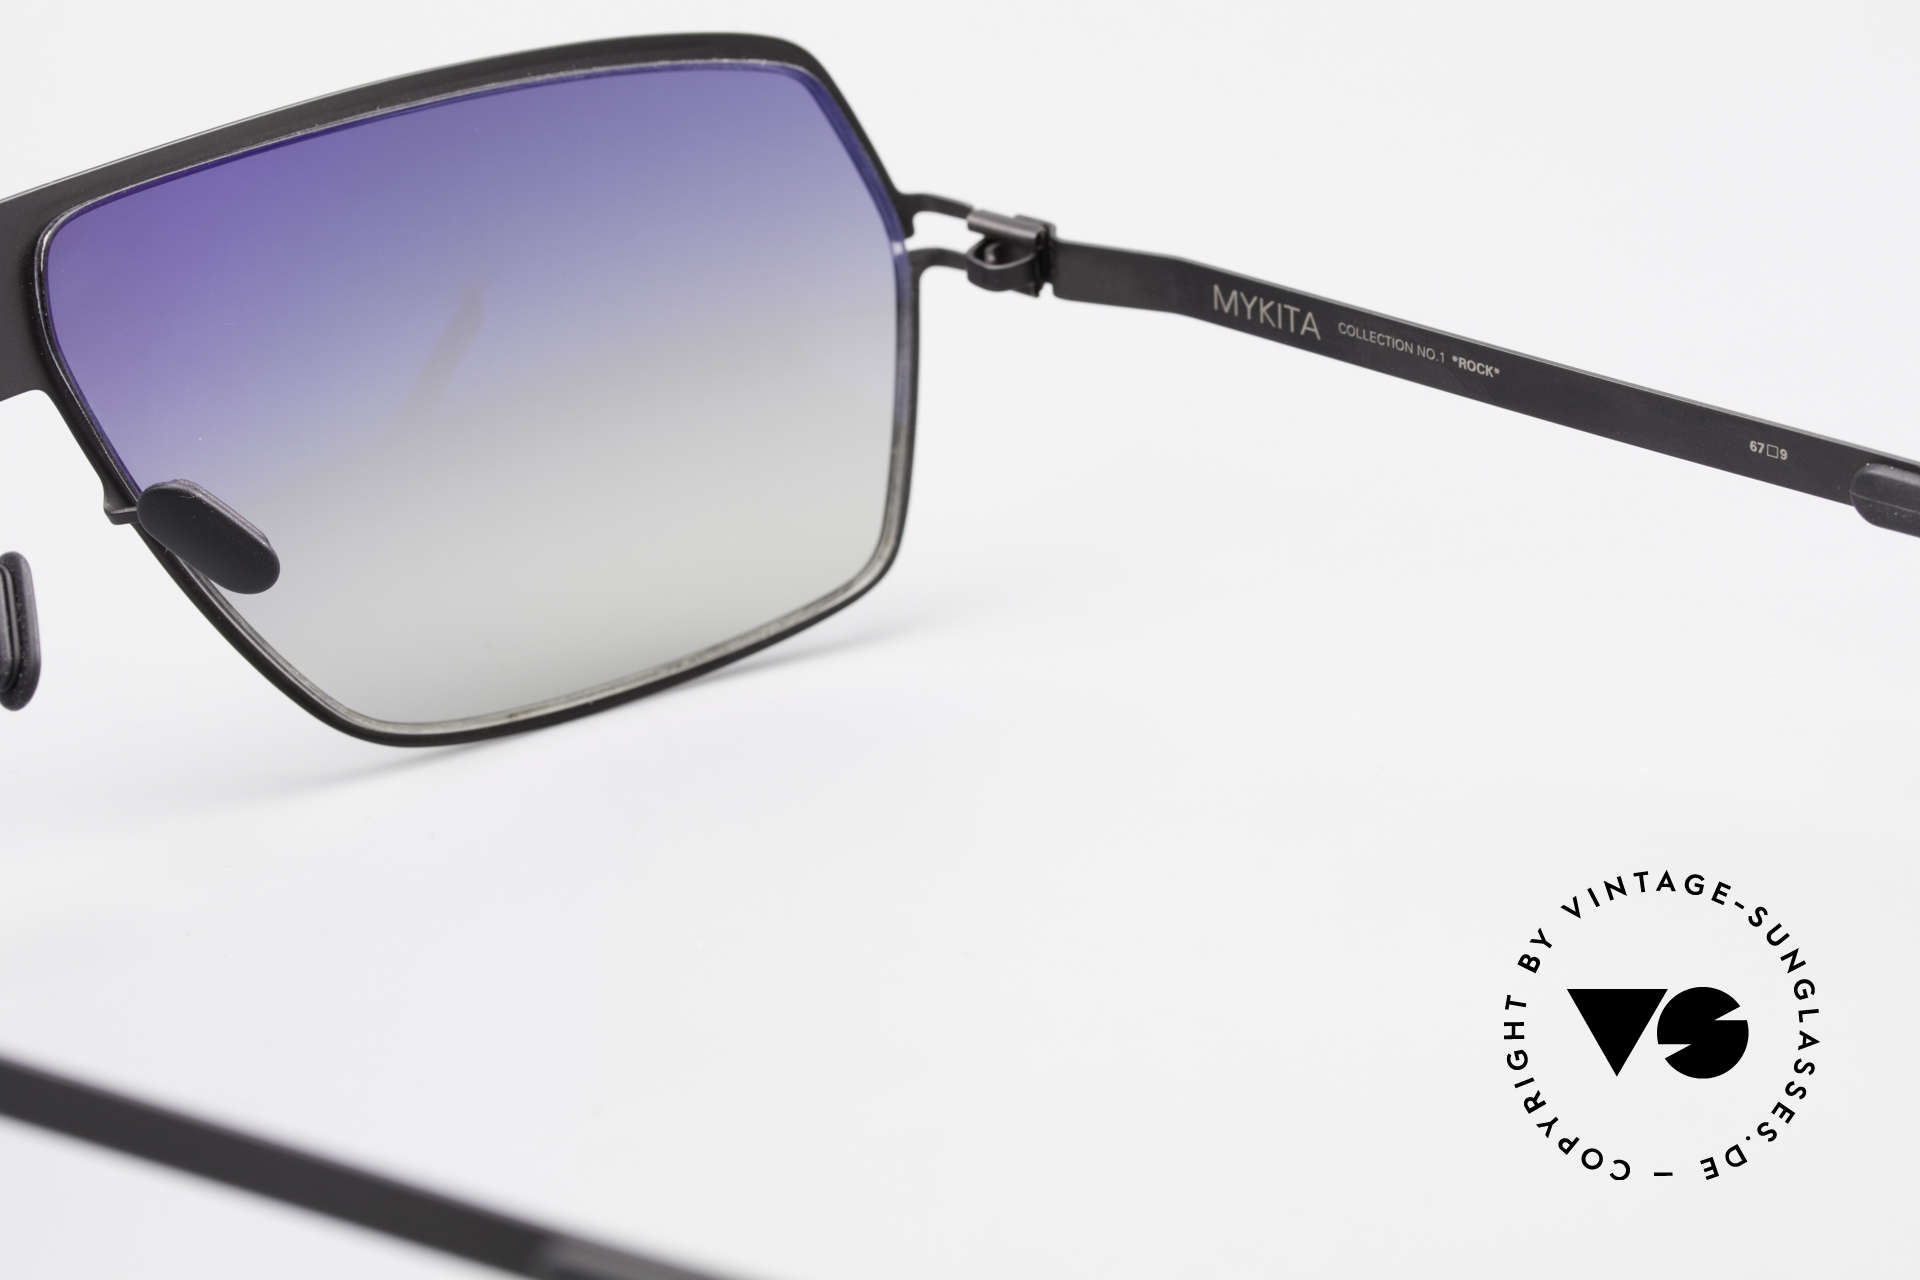 Mykita Rock No1 Men's Sunglasses 2009, thus, now available from us (unworn and with orig. case), Made for Men